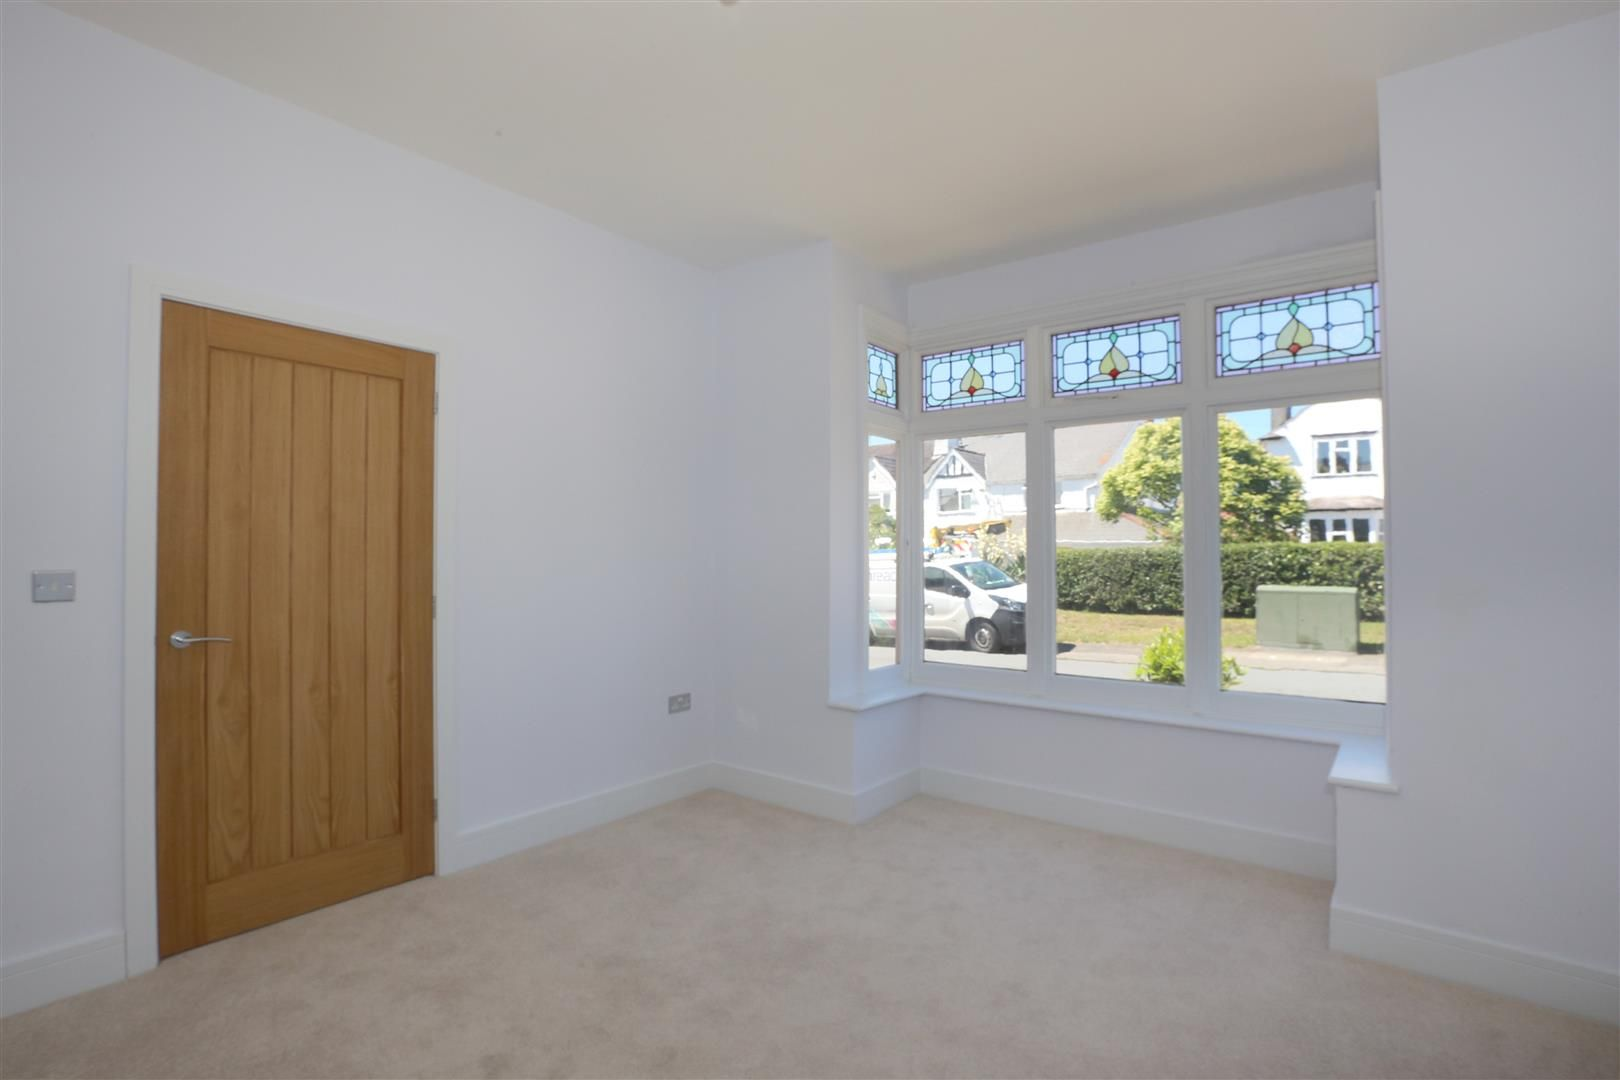 4 bed detached for sale in Hagley 30